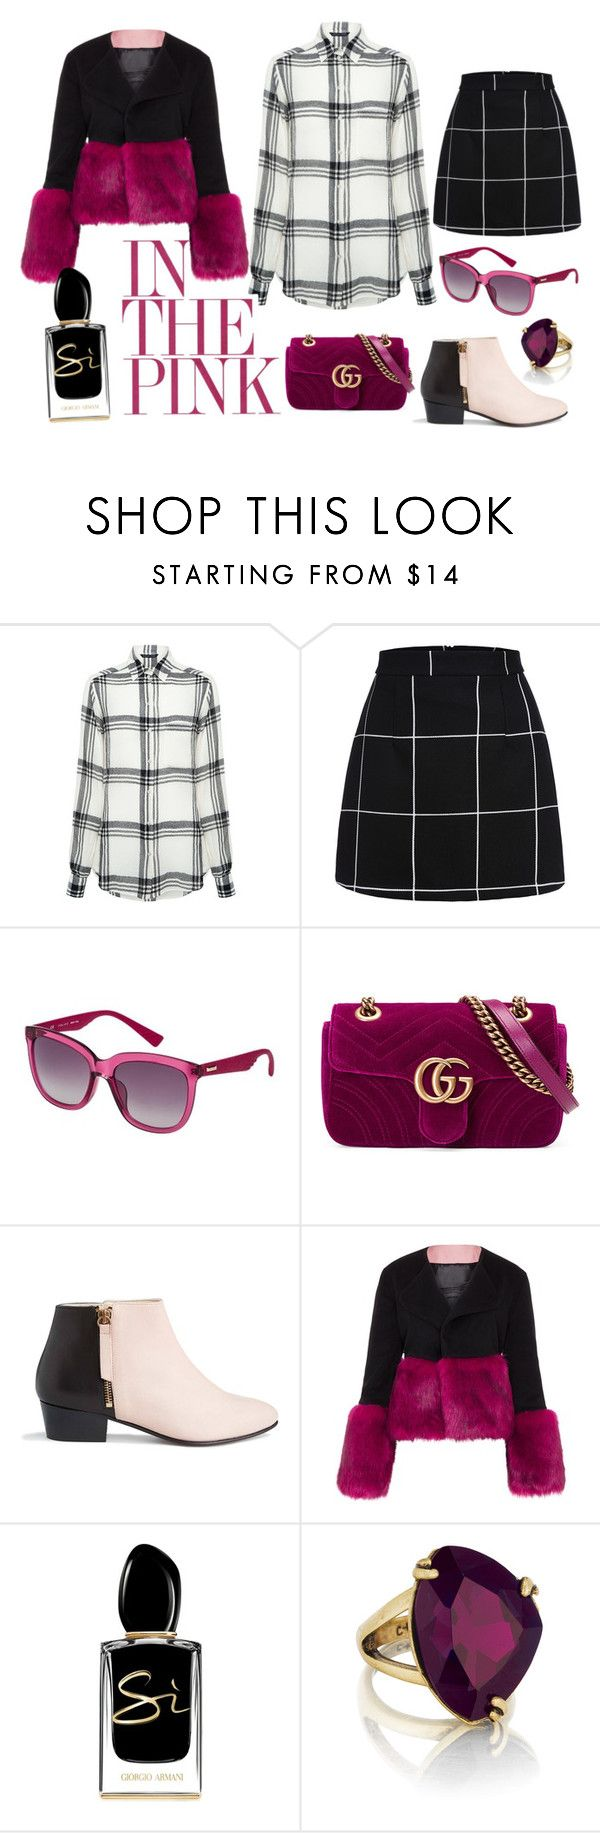 """""""Baby you can drive my car"""" by always-right ❤ liked on Polyvore featuring Marissa Webb, POLICE, Gucci, Nine to Five, Vjera Vilicnik, Giorgio Armani and Chloe + Isabel"""